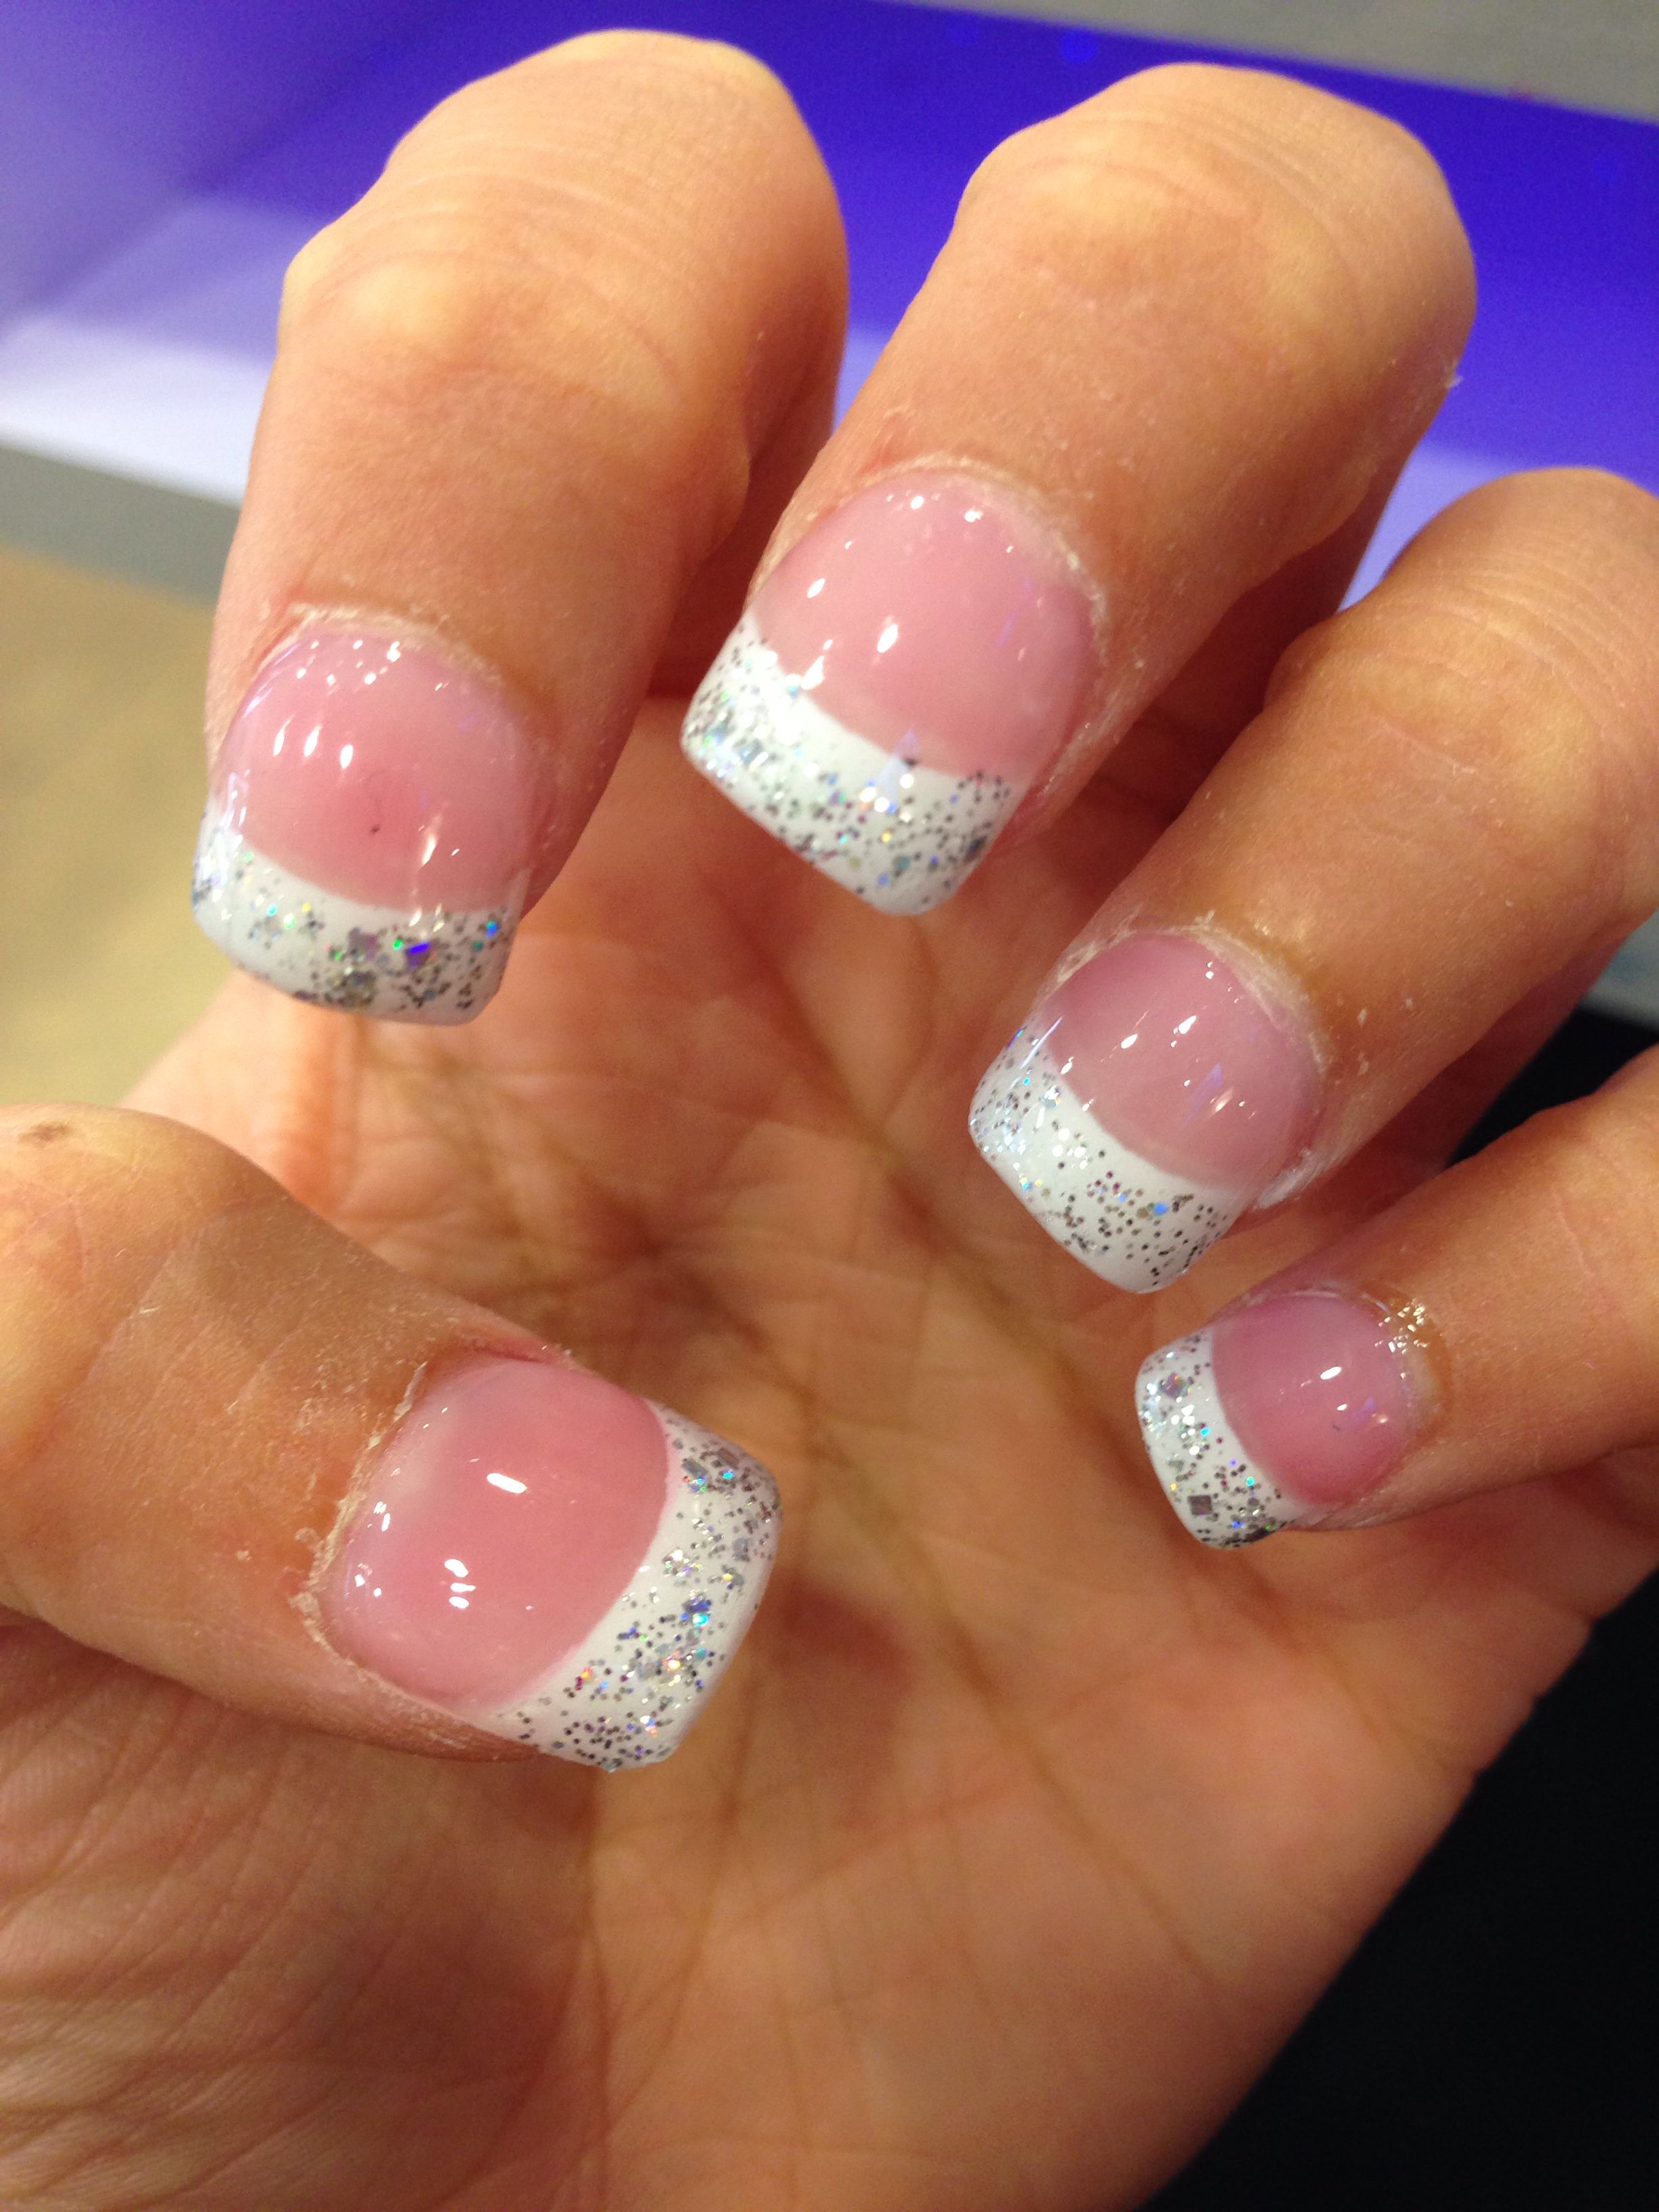 Glitter French tip acrylic nails! | Nails | Pinterest